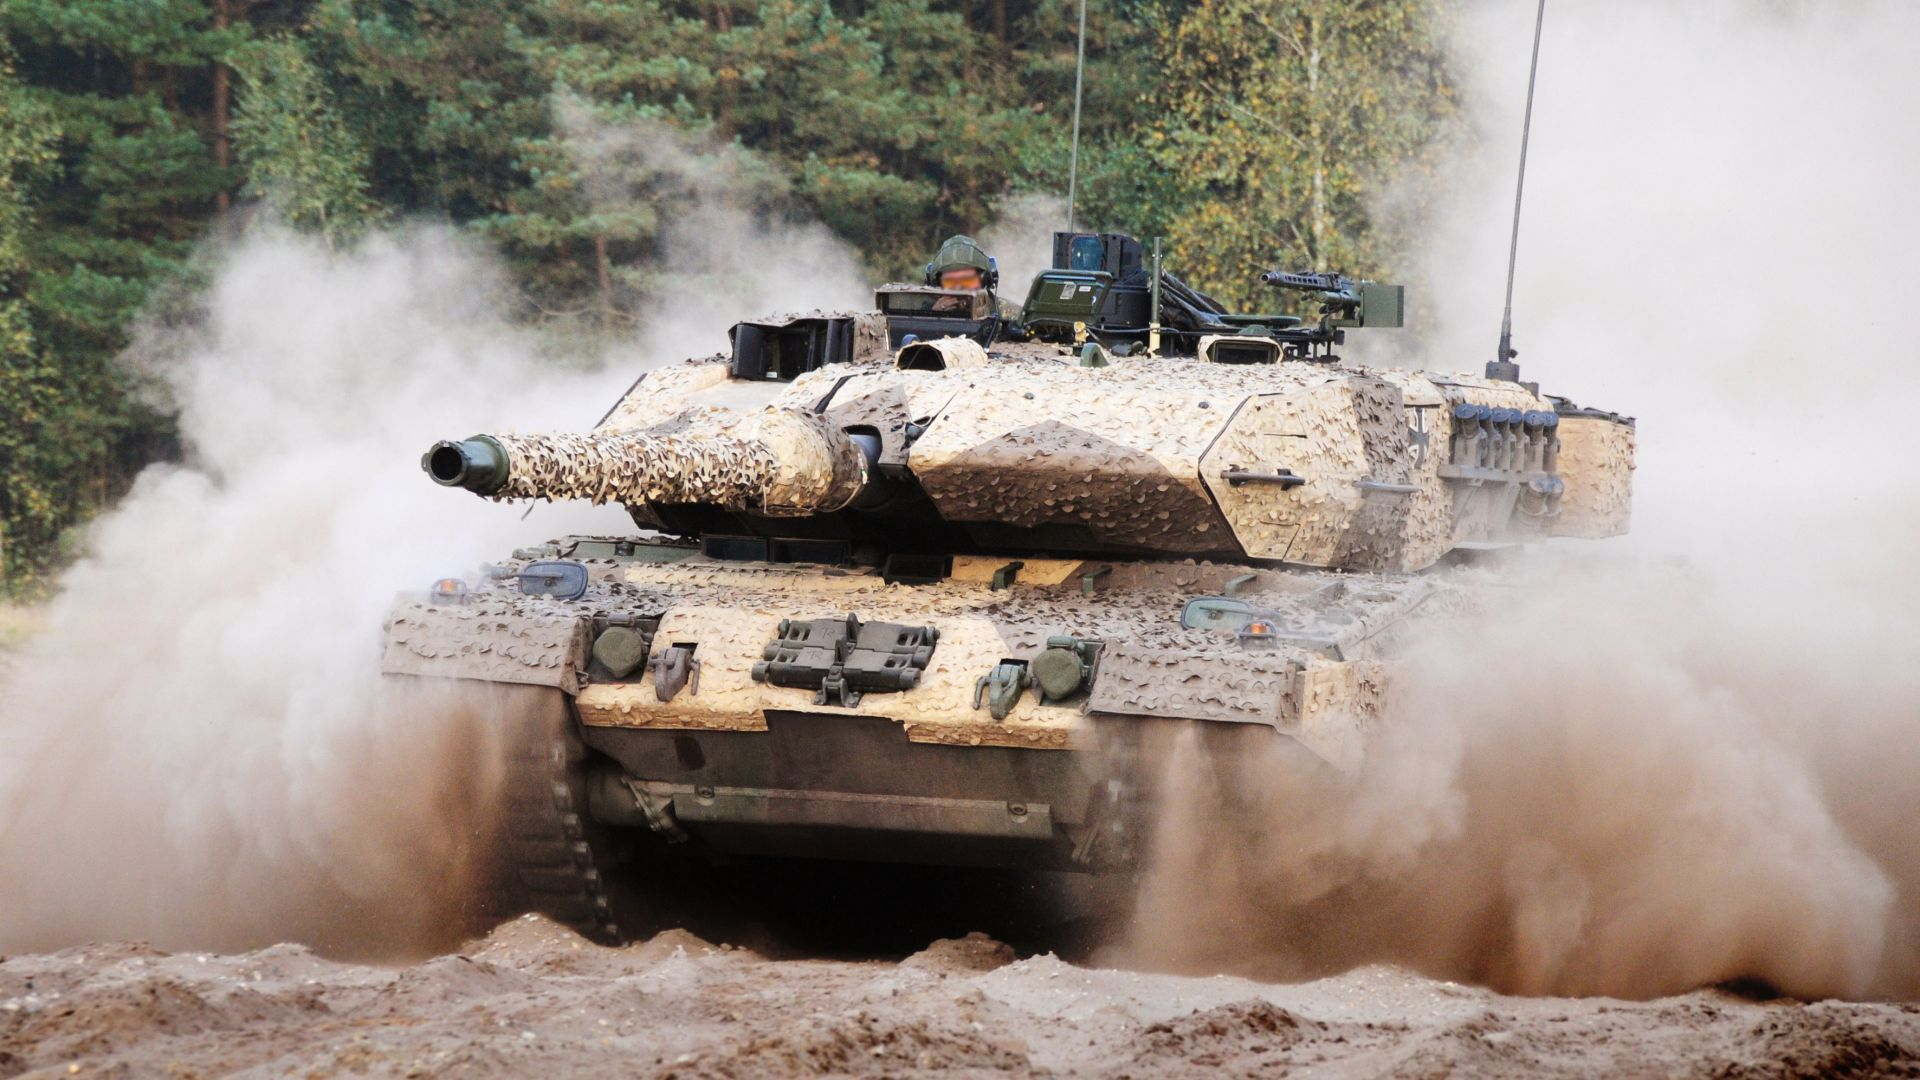 Leopard 2A7, tank, German Army (horizontal)